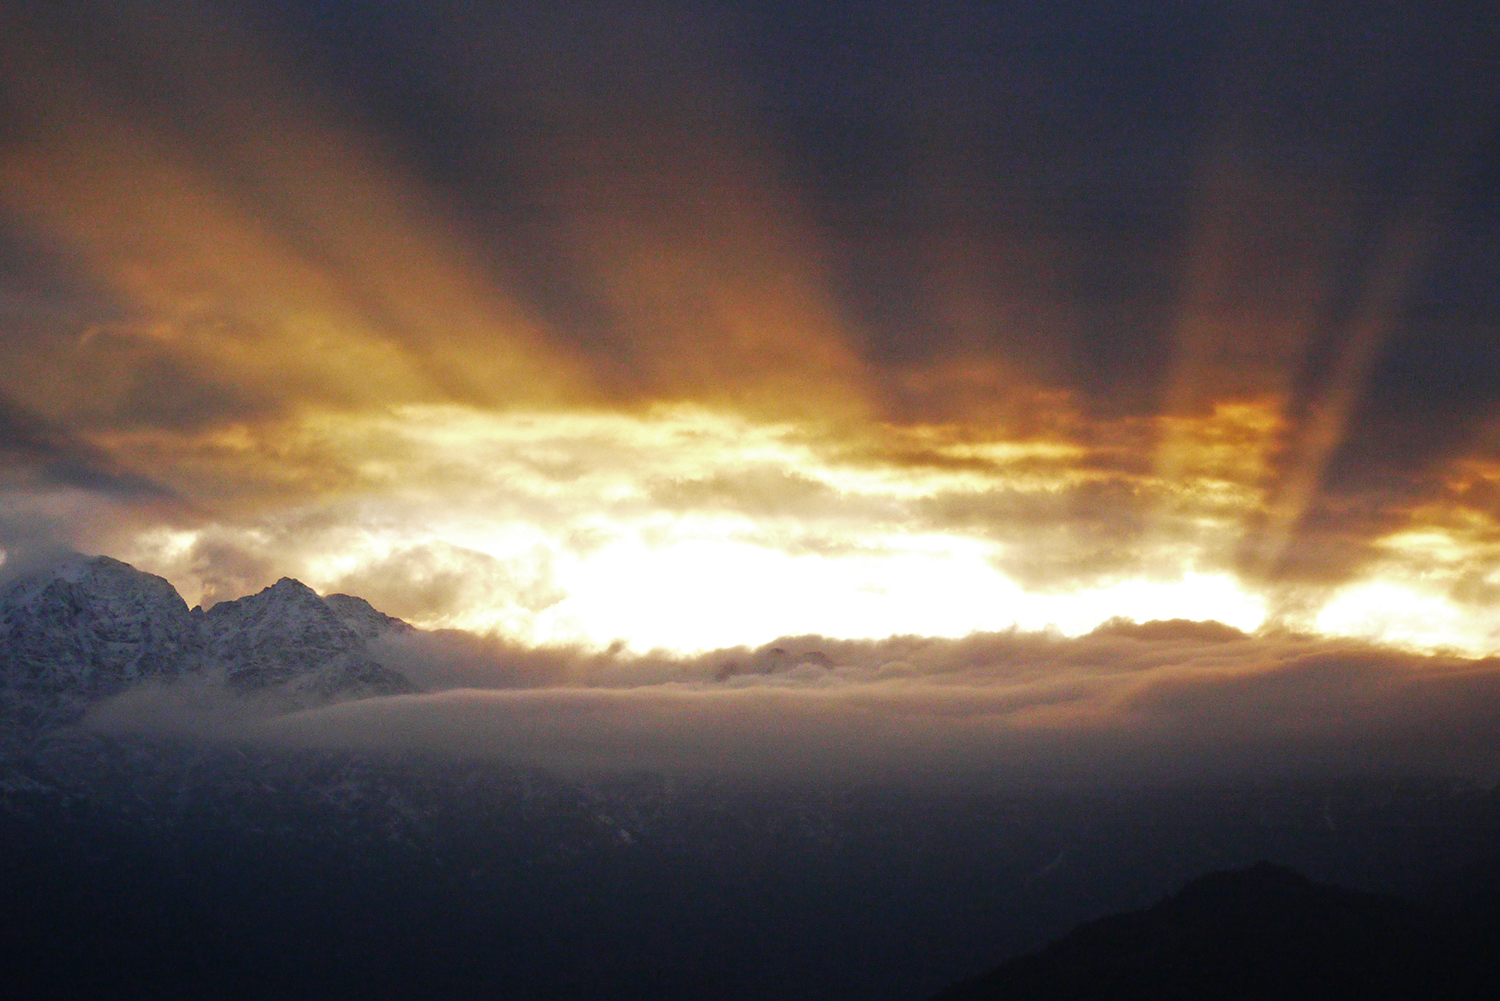 Sunrise over the Himalayas at Bhandar - stunning!